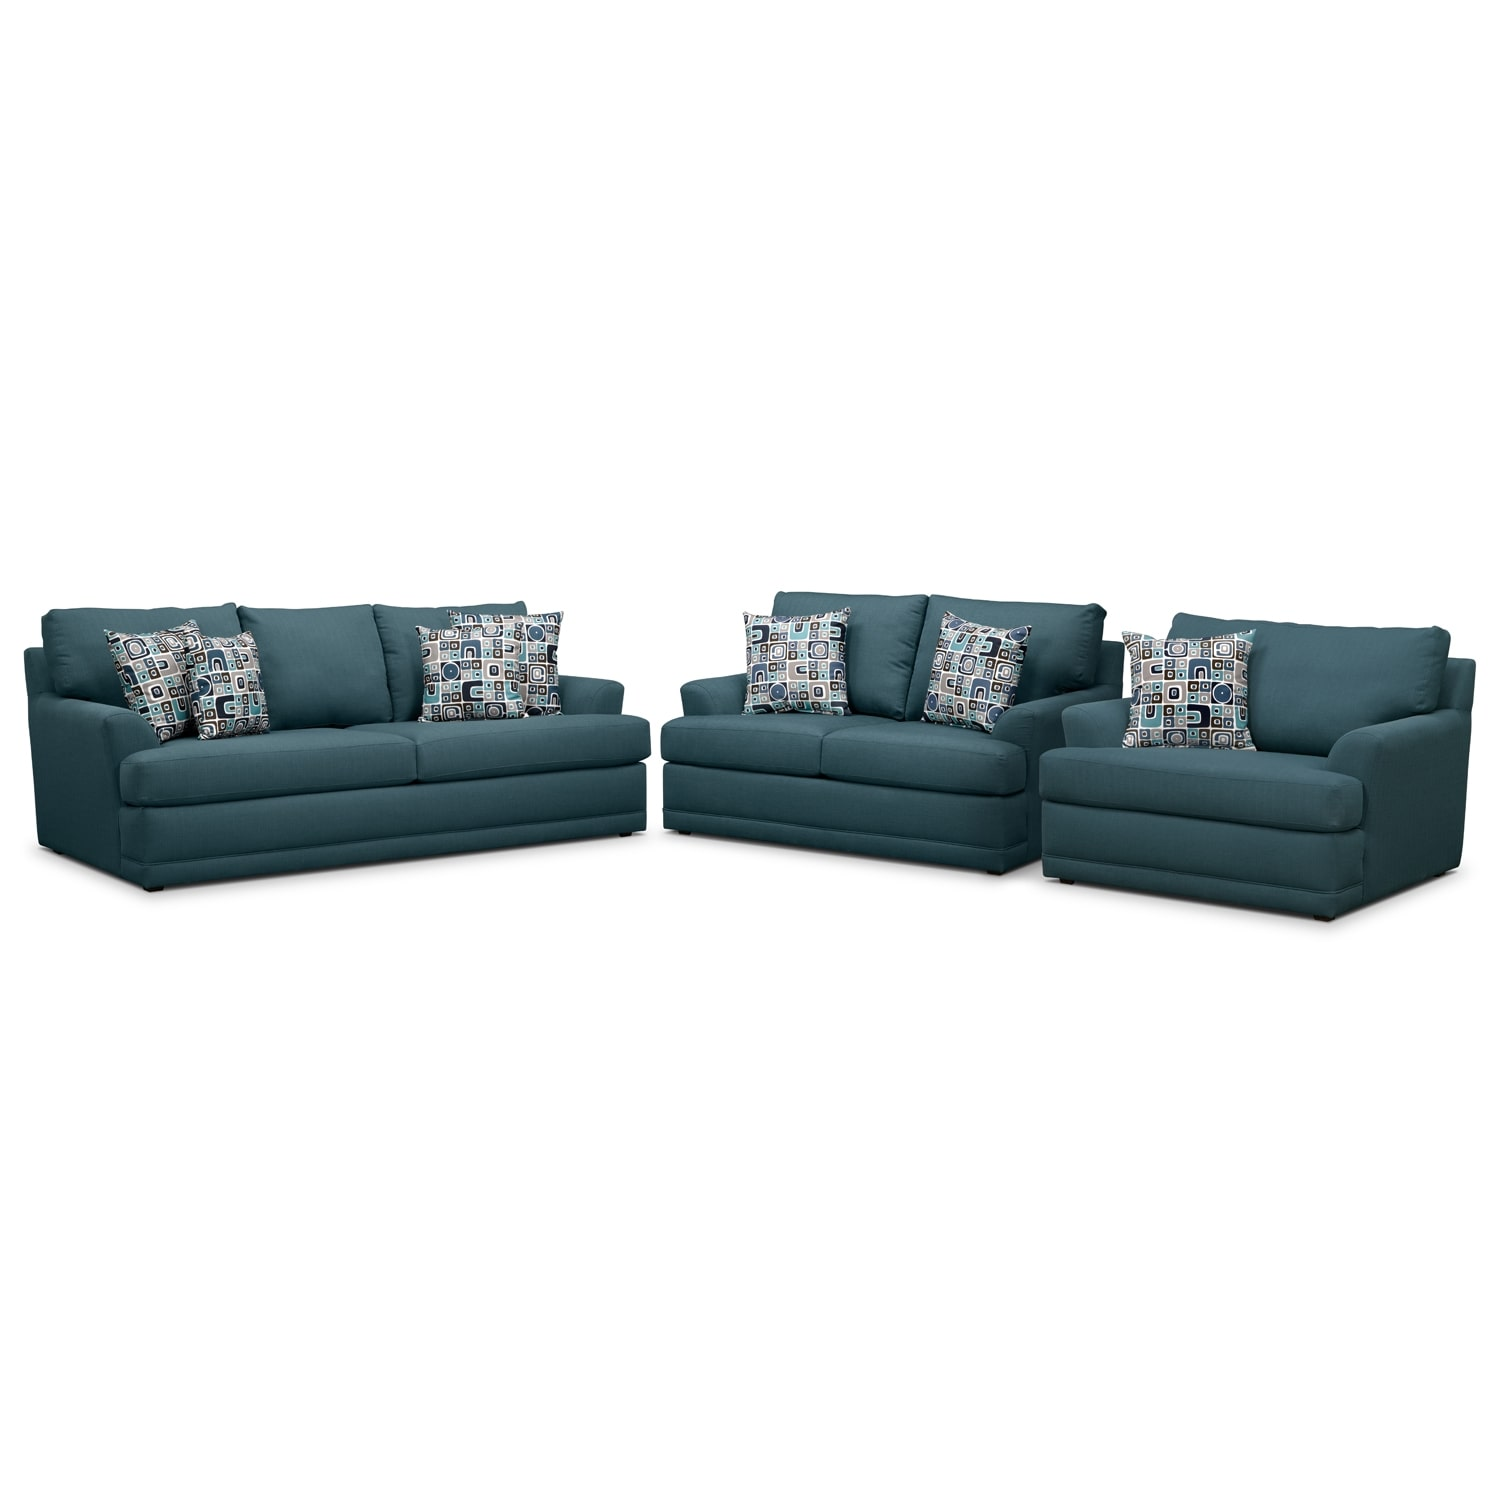 [Kismet 3 Pc. Sleeper Living Room with Chair and a Half and Memory Foam Mattress - Teal]